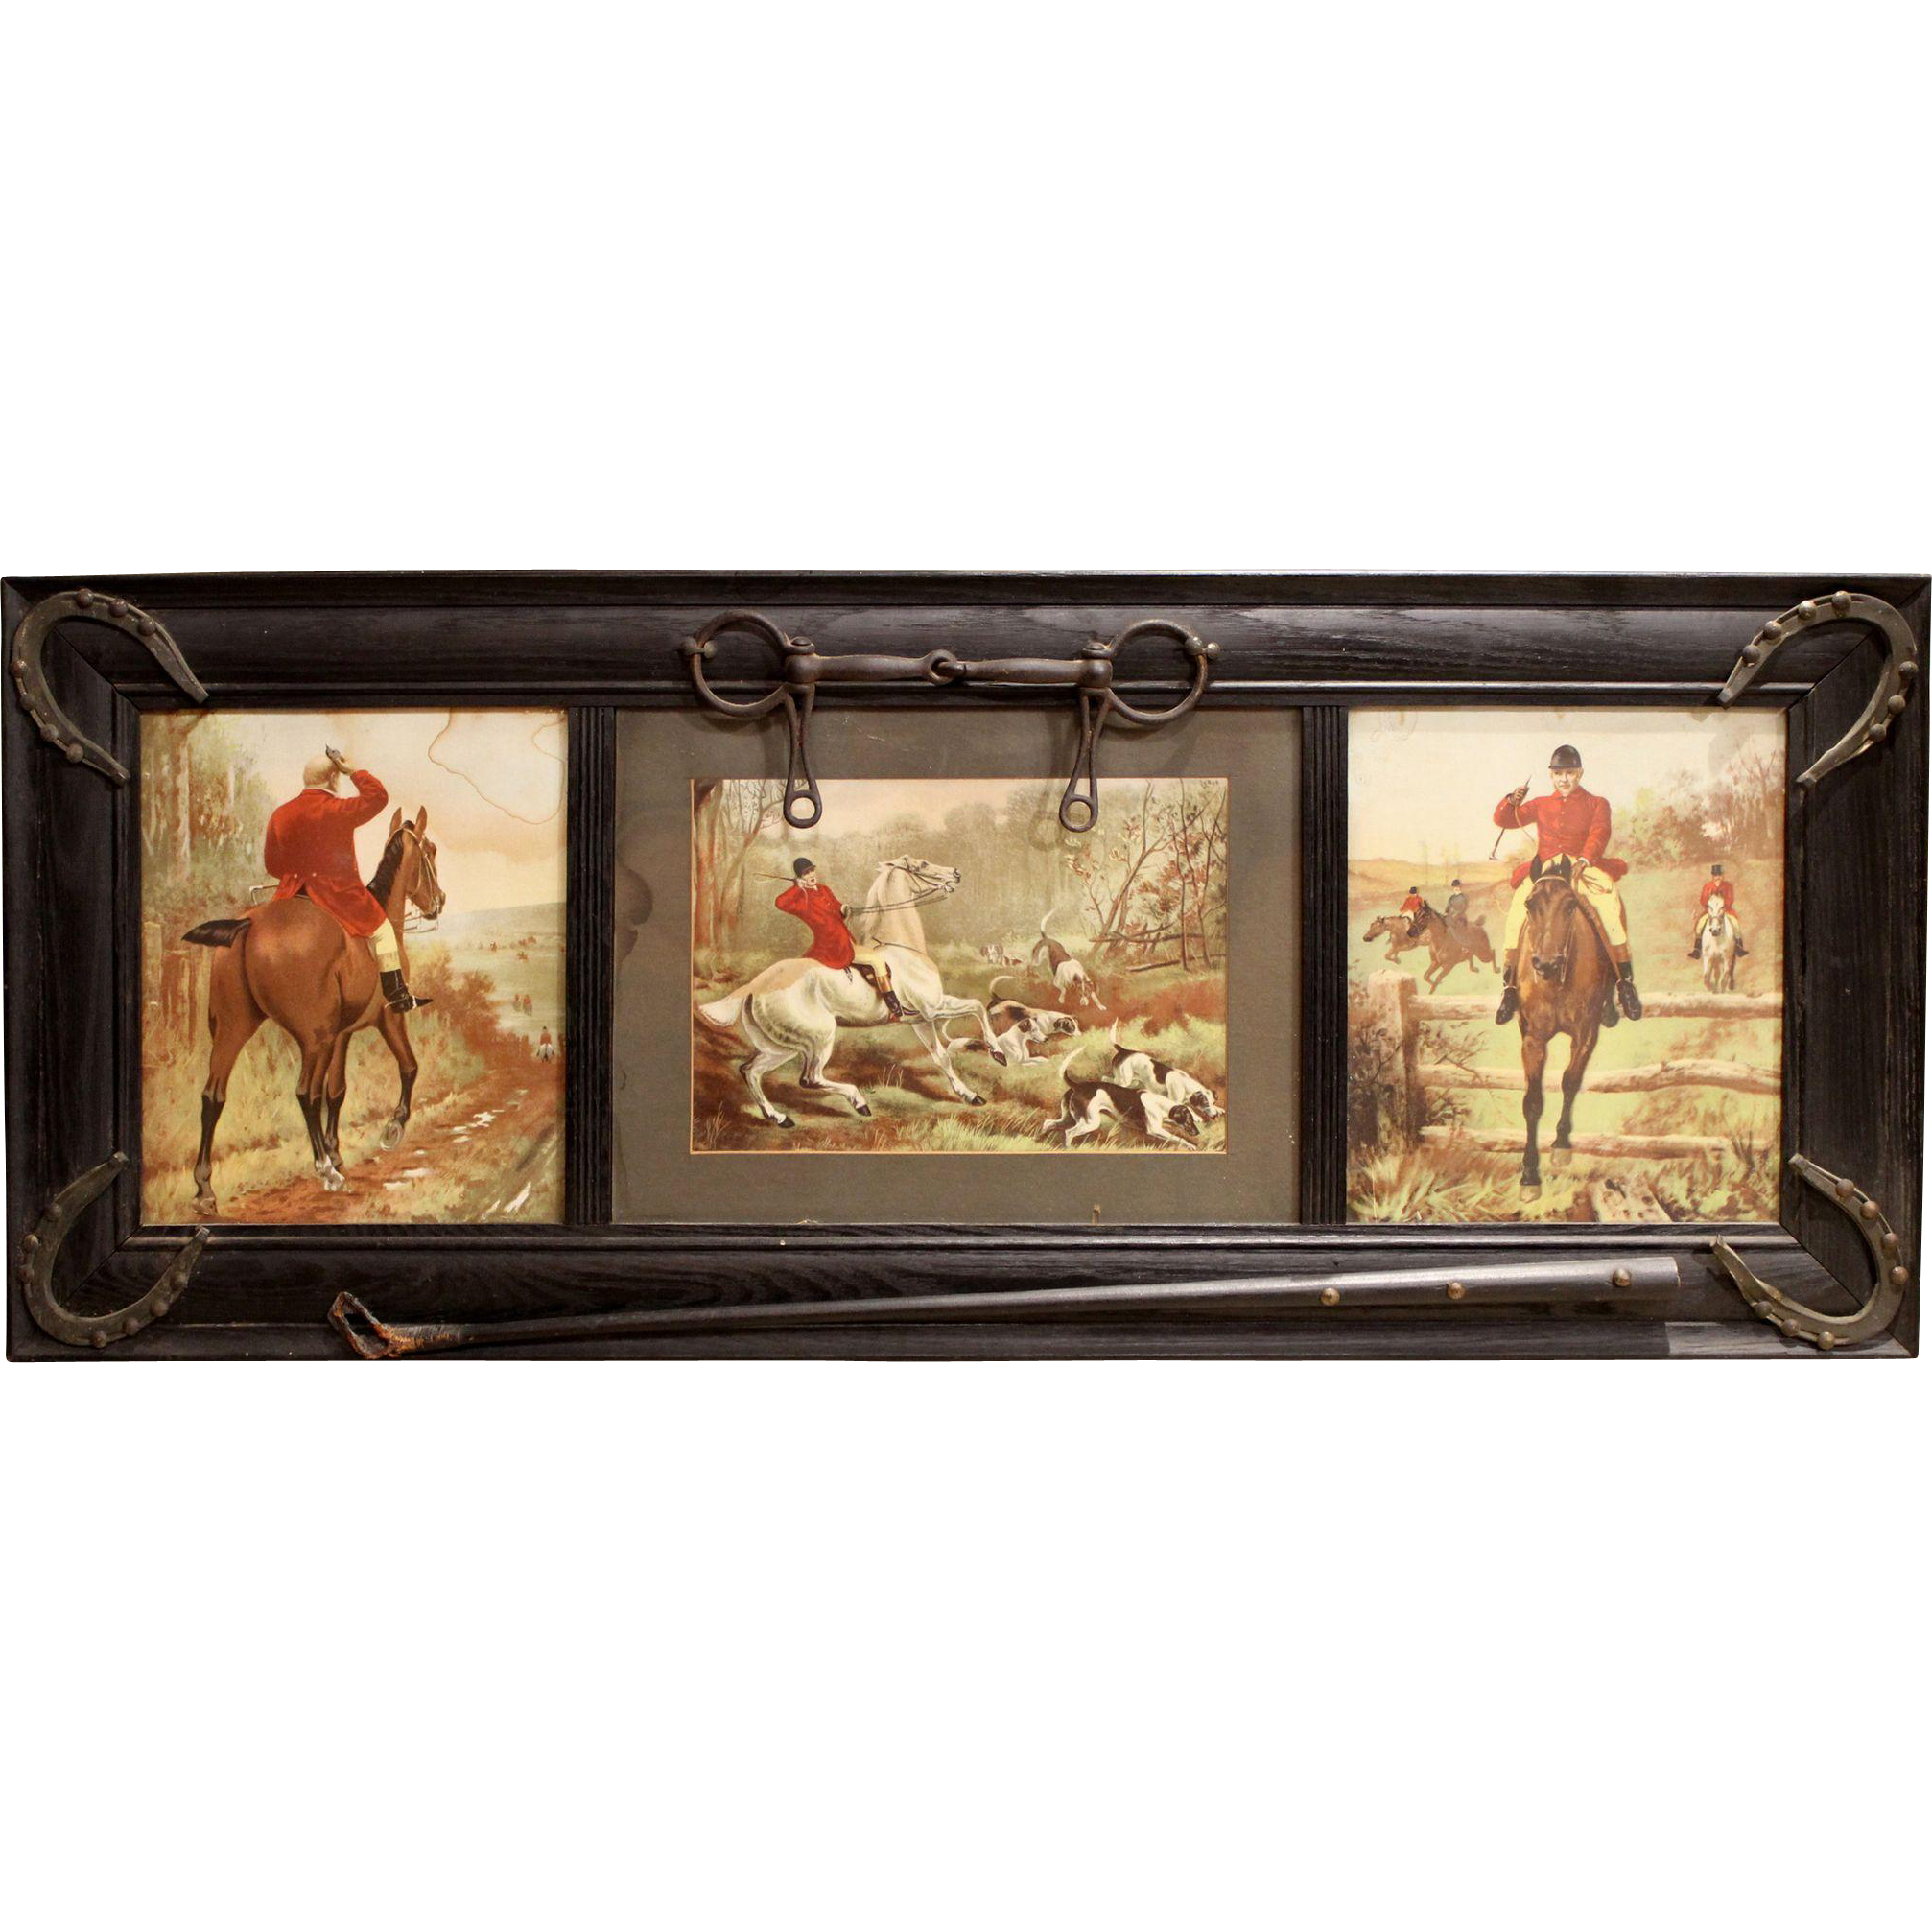 Set of Three Fox Hunt Prints in Horse / Equestrian Theme Frame